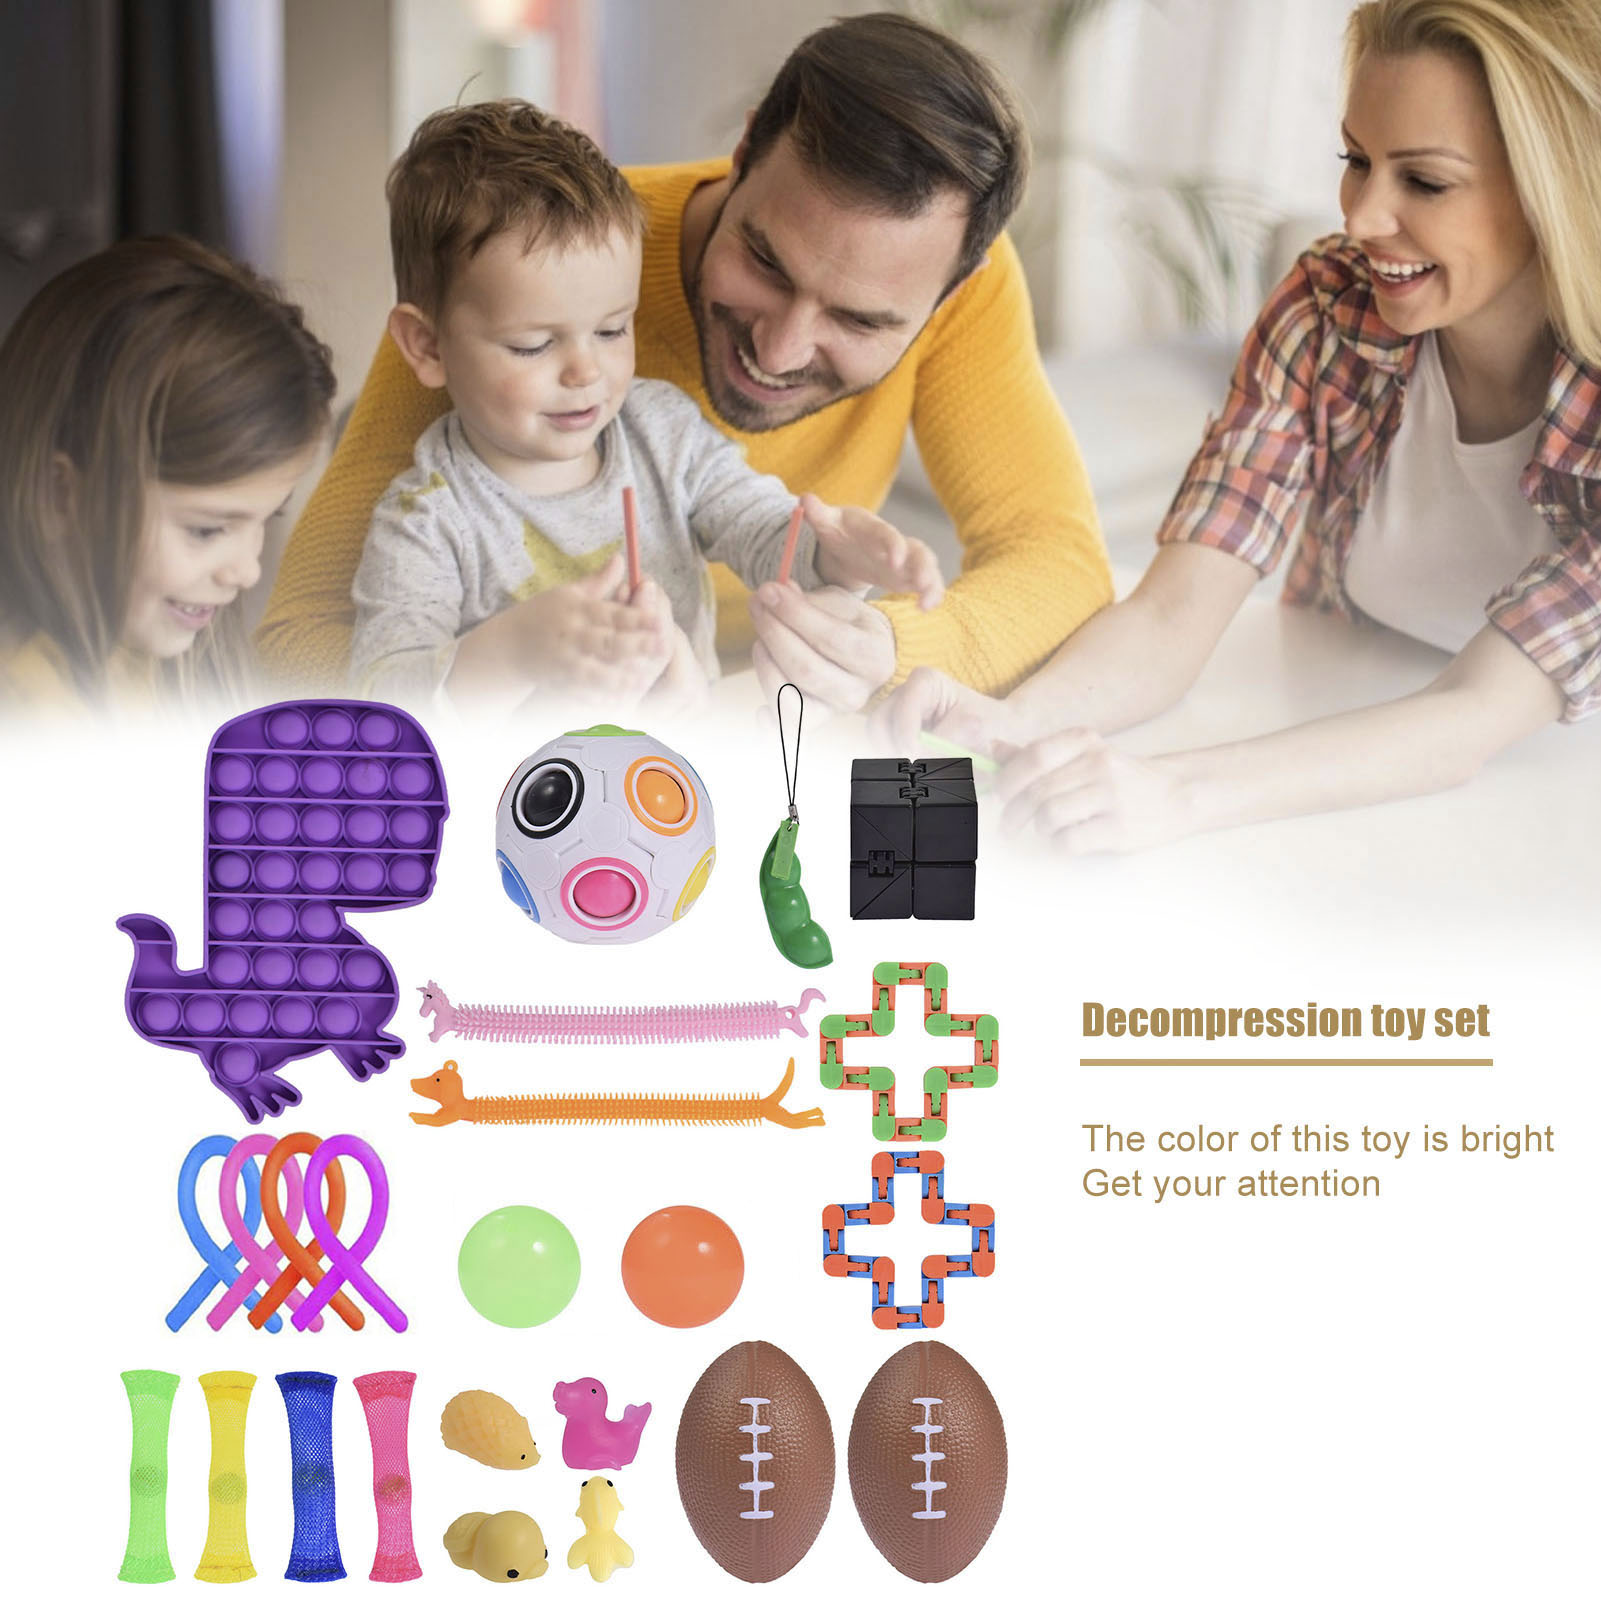 24PCS Sensory Fidget Toy Relief Autism Anxiety Bubble Toys Silicone Stress Relief Anti-Anxiety Toy For Kids Adults Stress Set enlarge